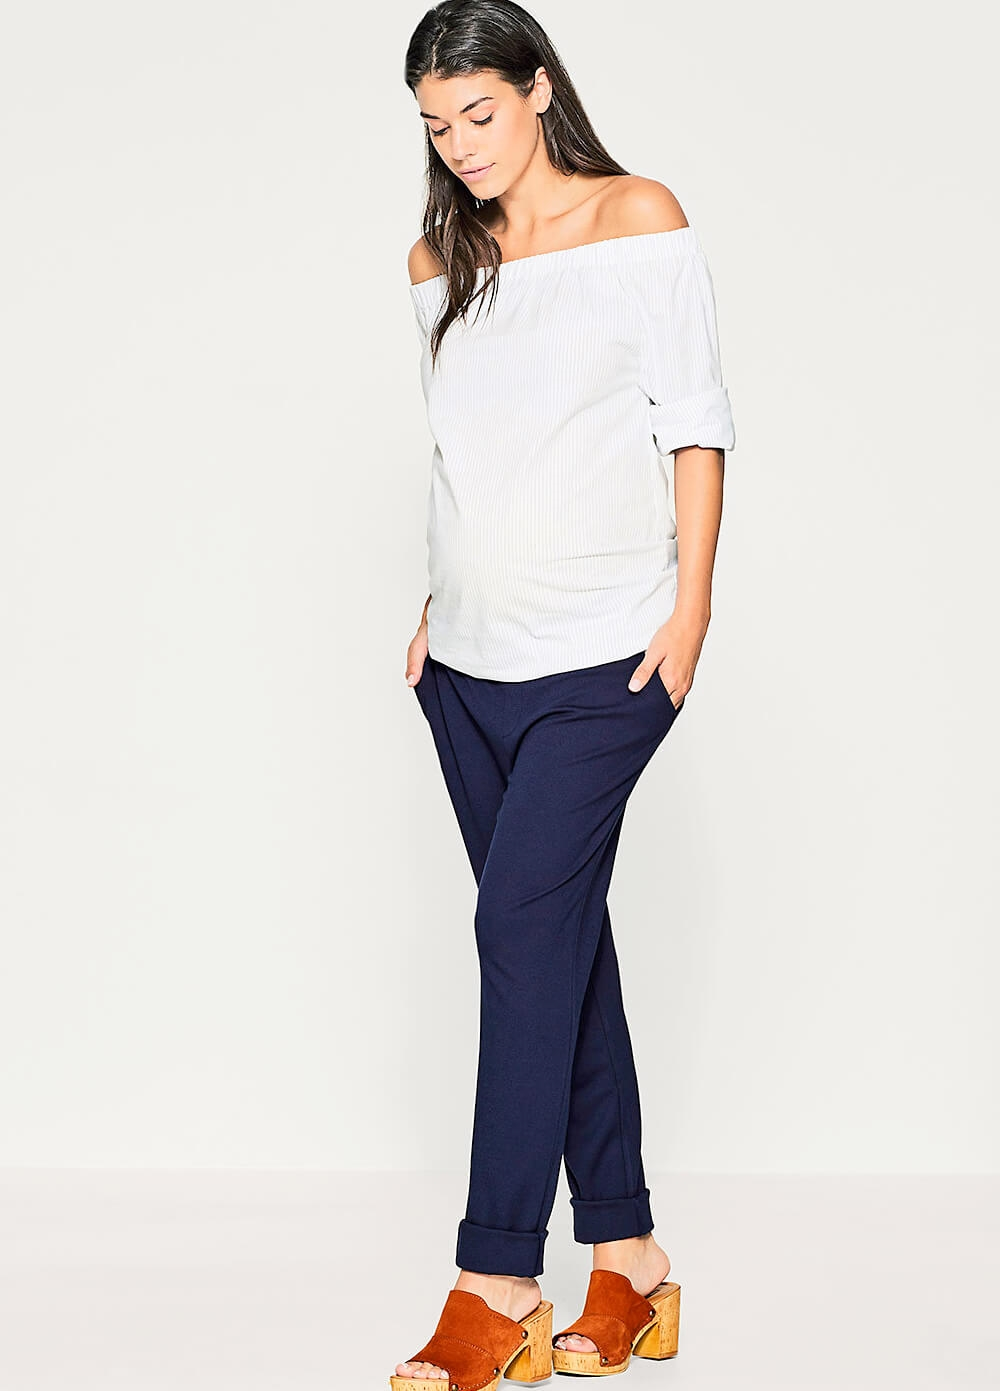 Off Shoulder Pinstriped Maternity Blouse by Esprit